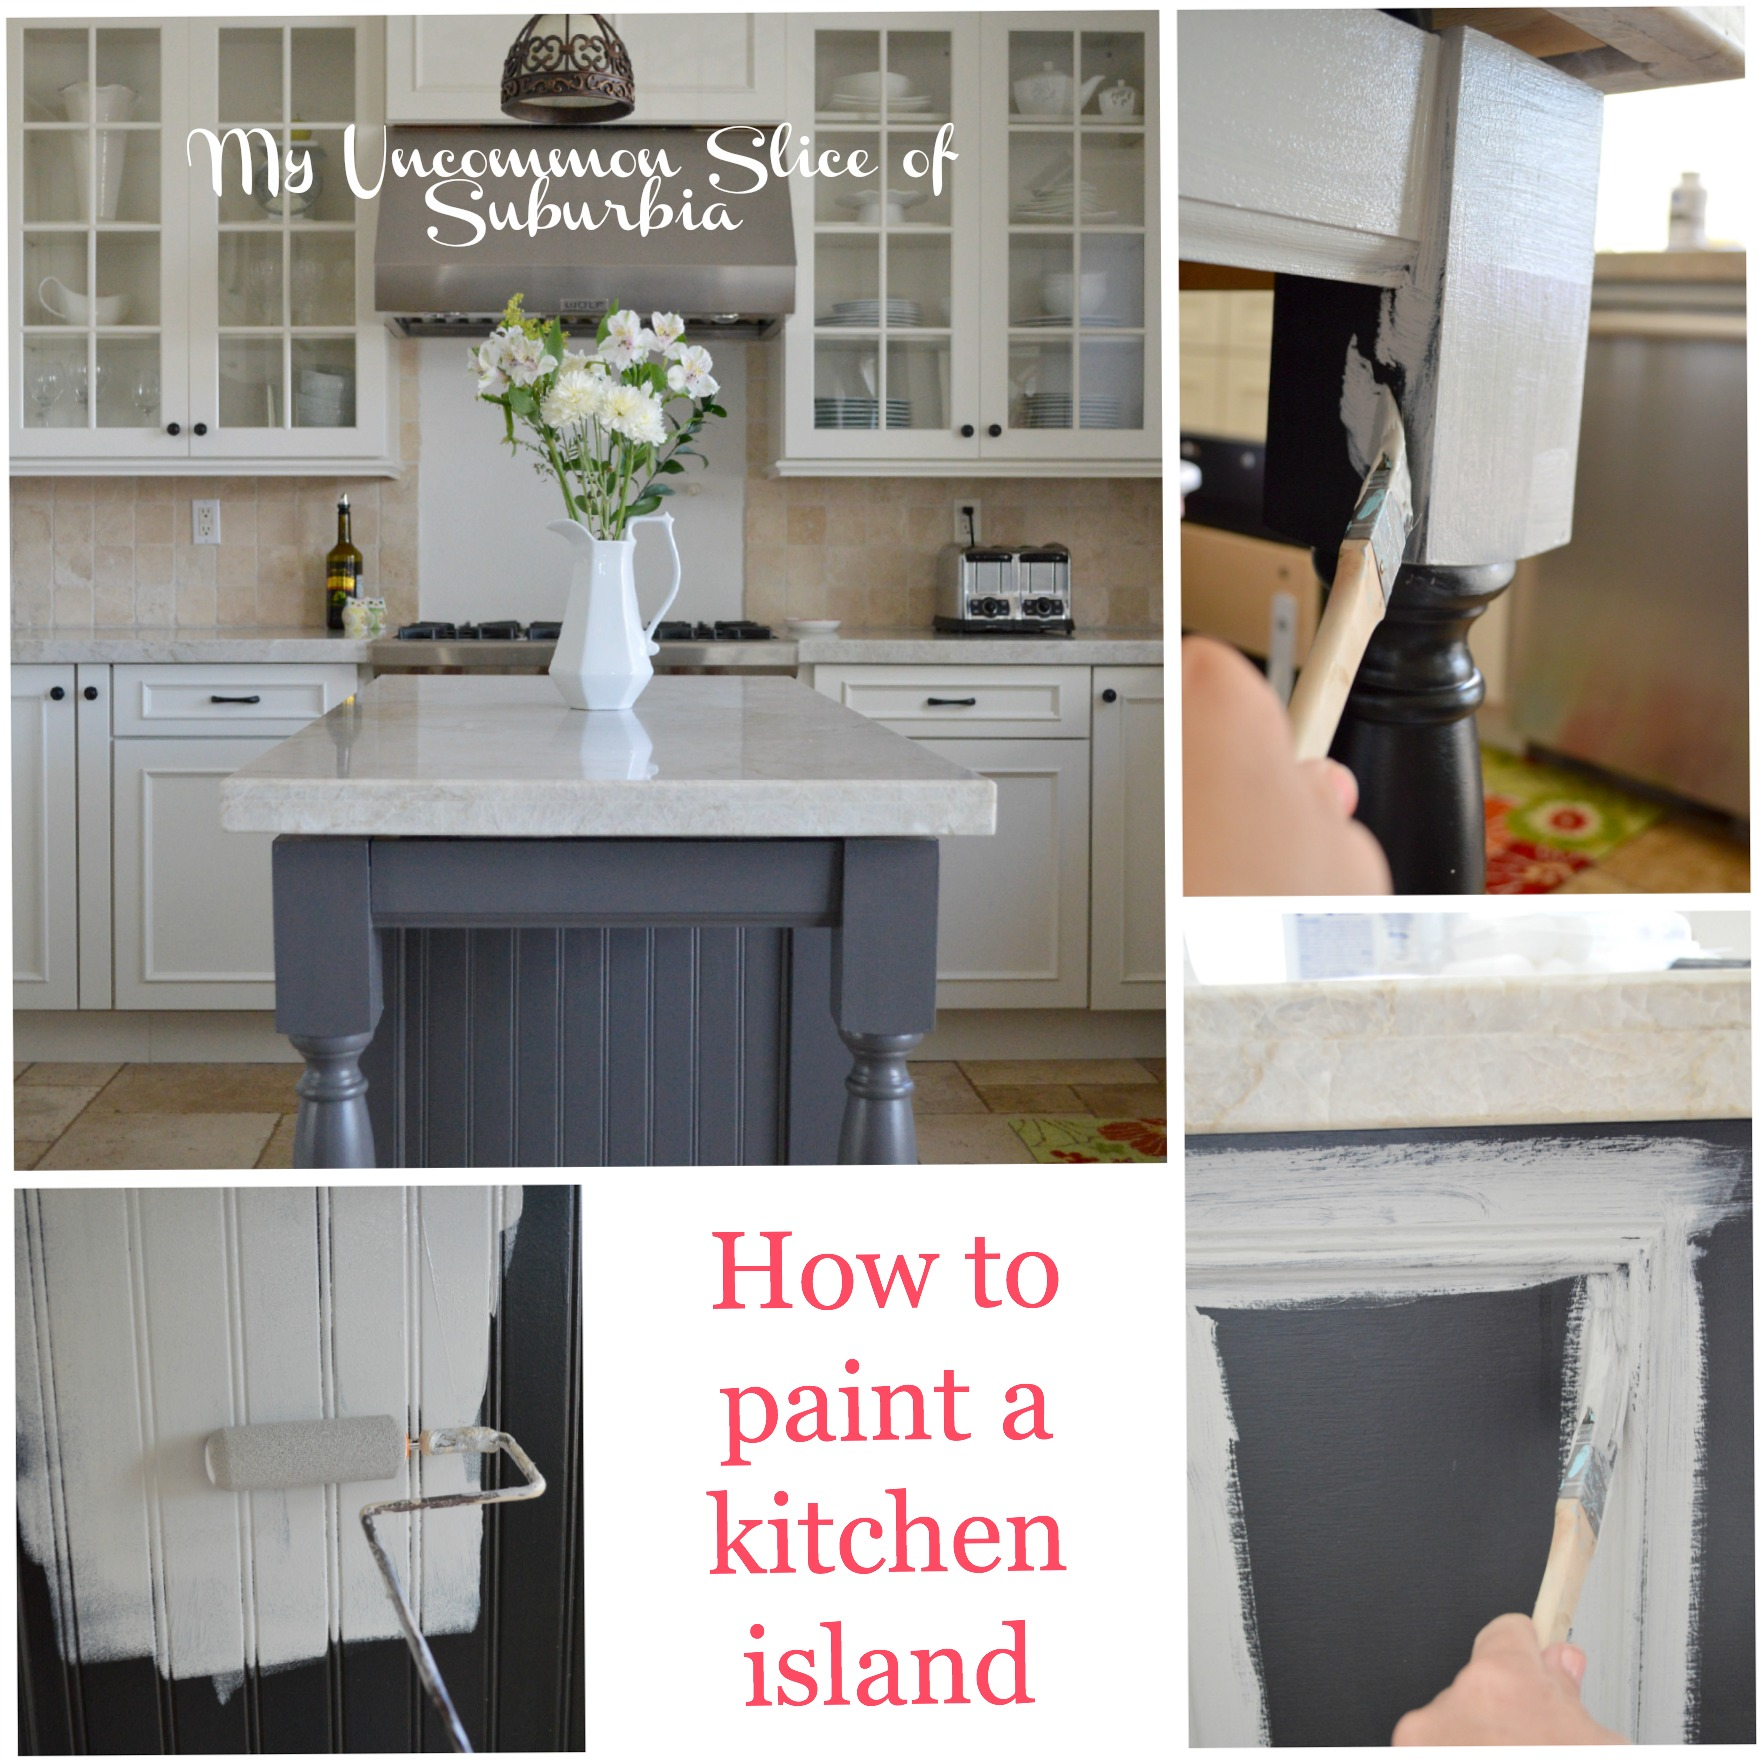 painted kitchen islands ikea doors how to paint a island